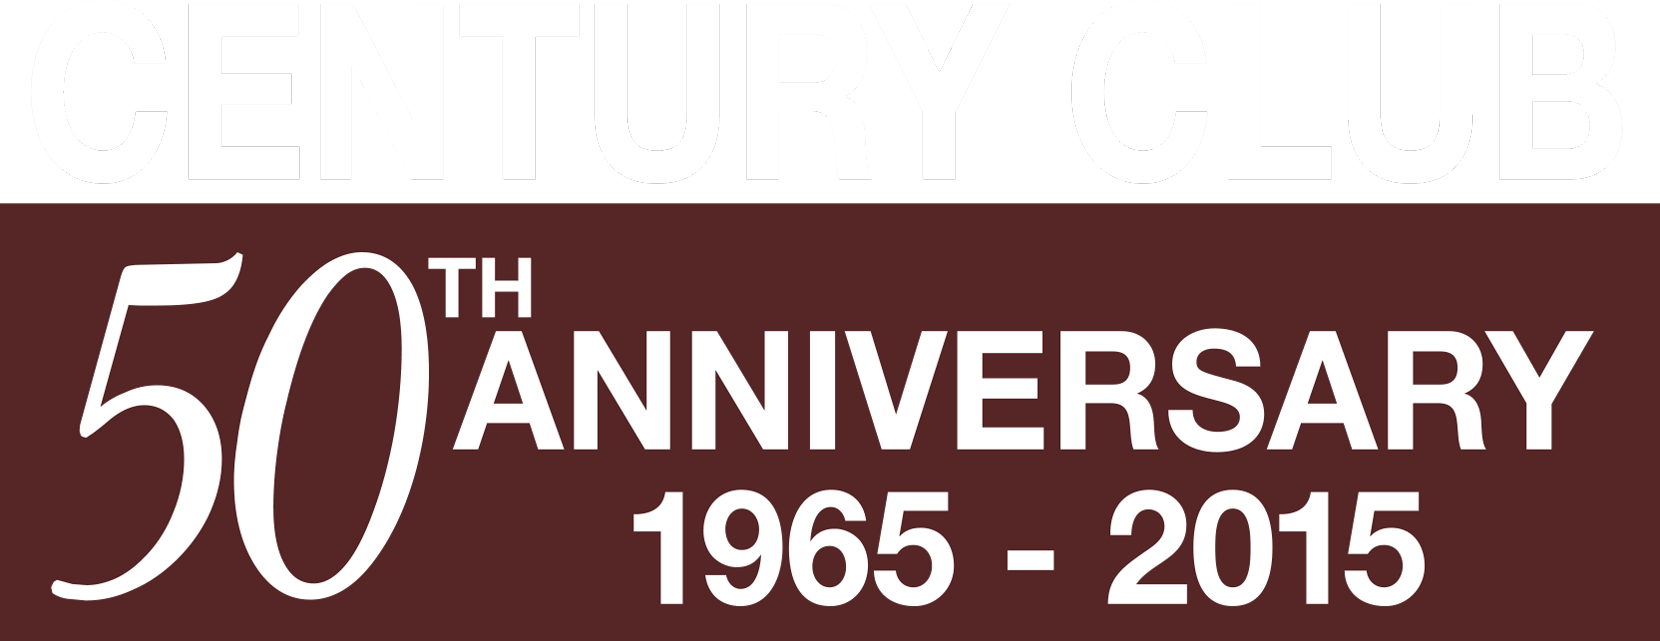 Century Club 50th Anniversary